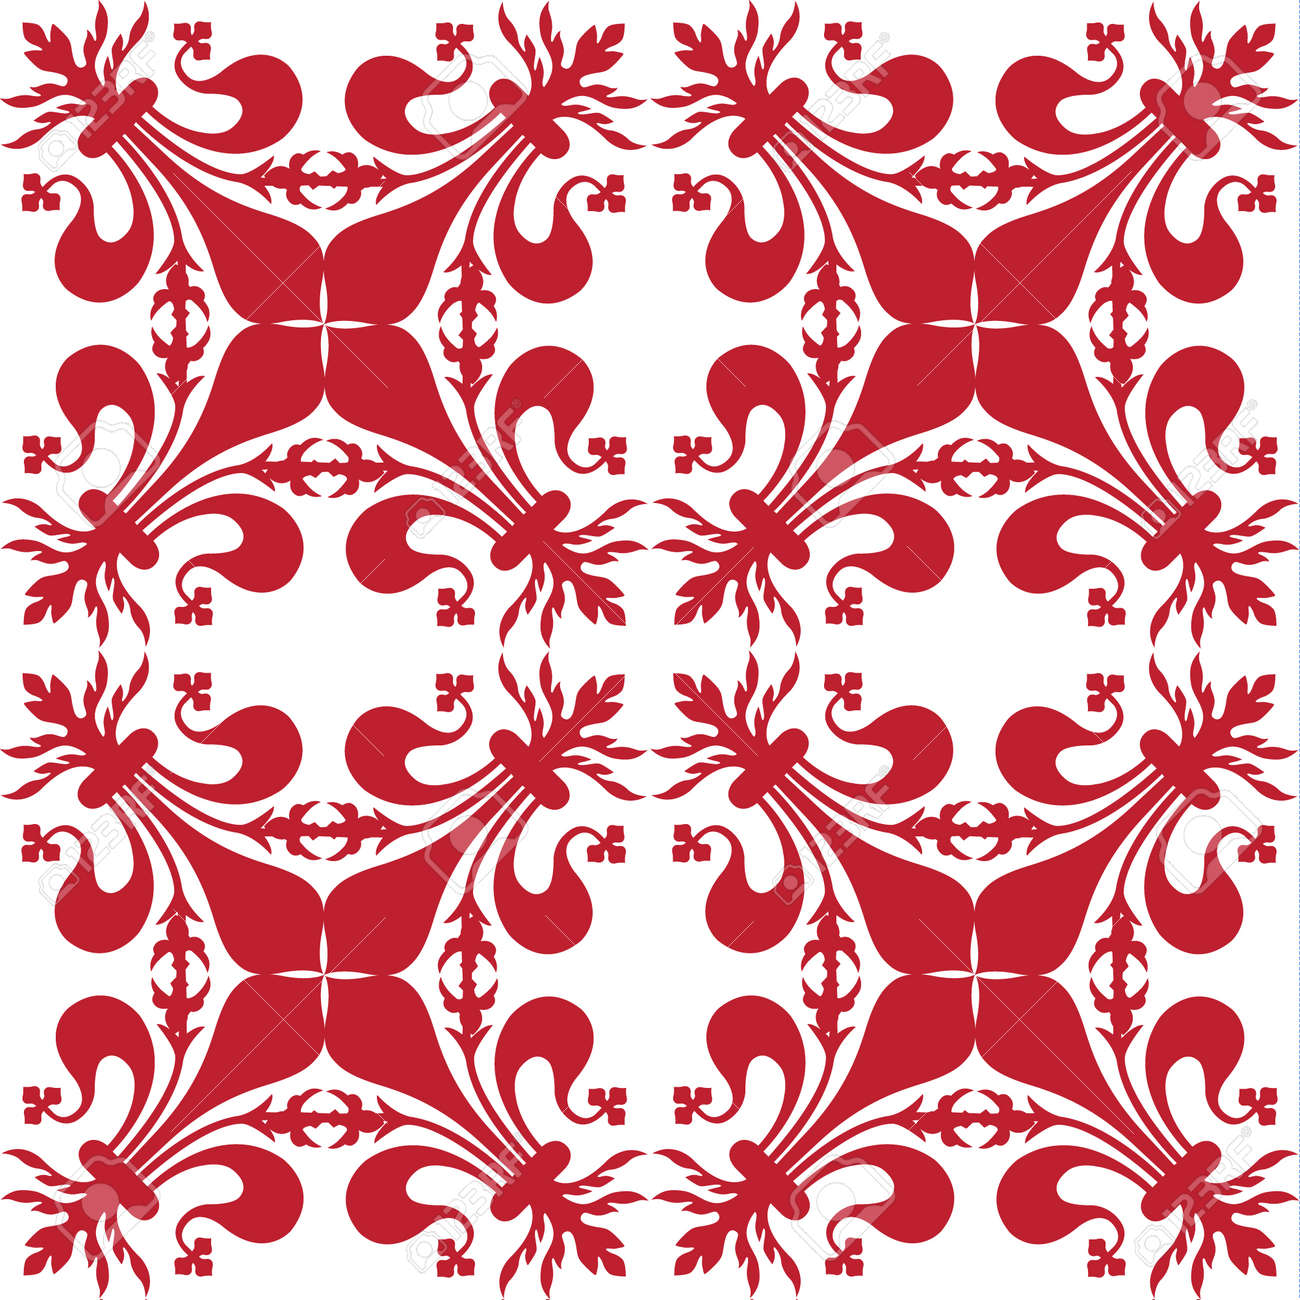 Pattern background with red florentine lily - 167916696